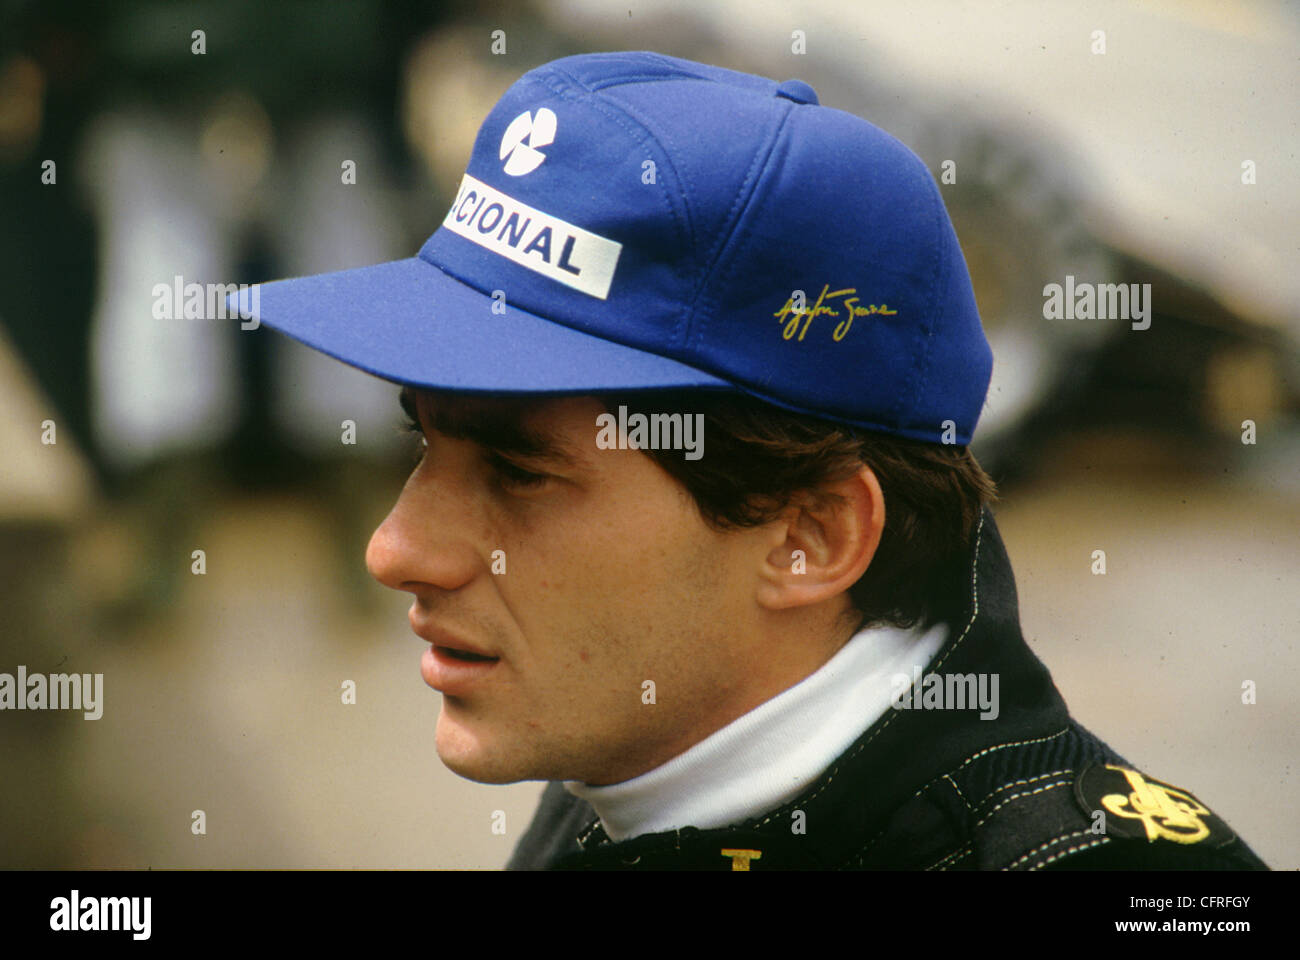 Ayrton Senna Lotus 1985 British Grand Prix - Stock Image